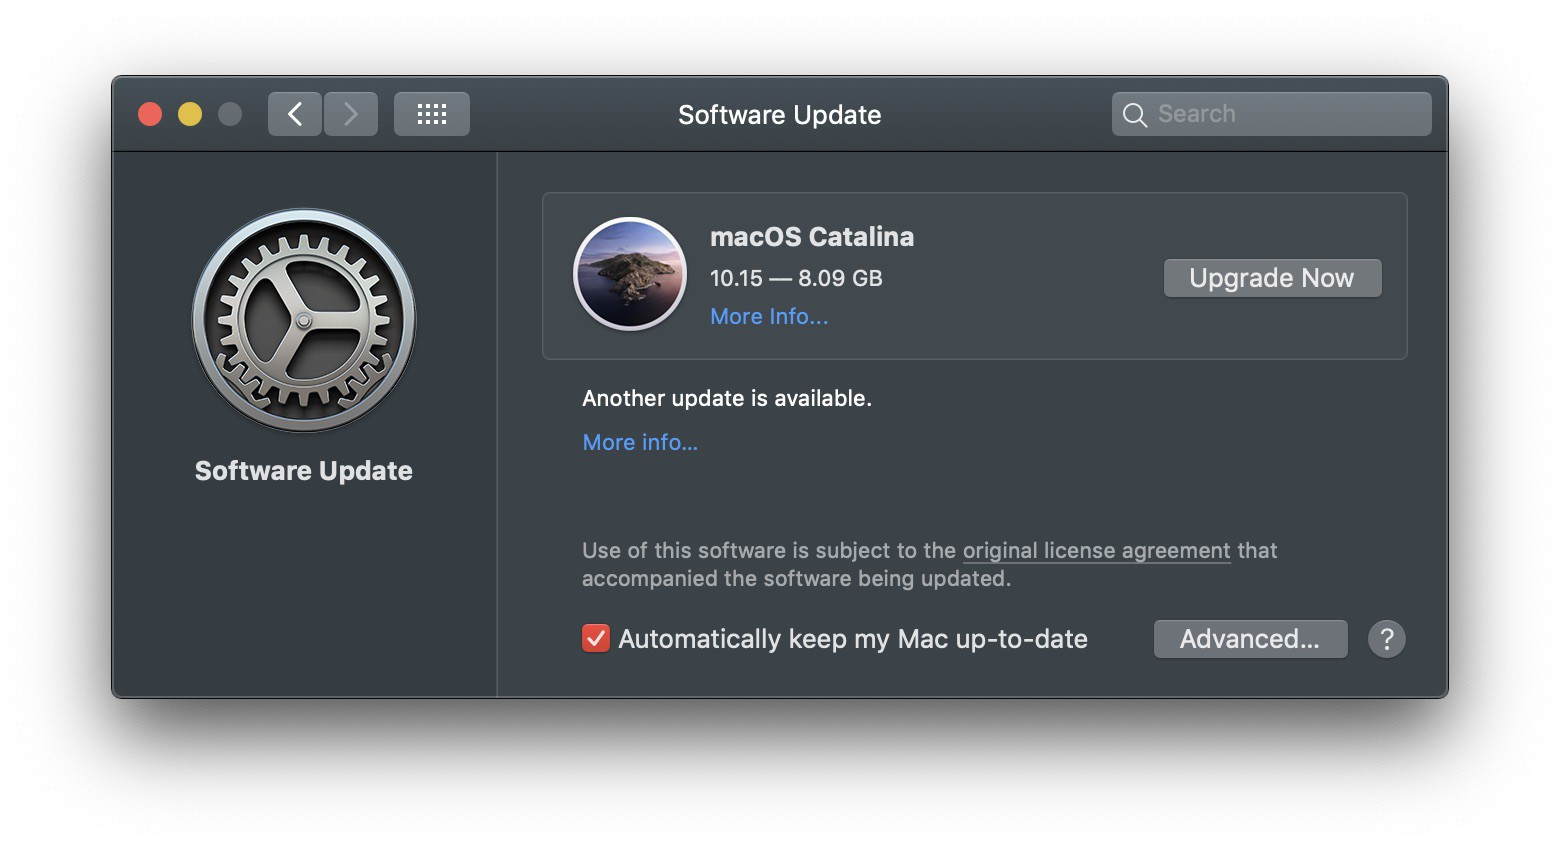 The update info box for macOS 10.15 Catalina